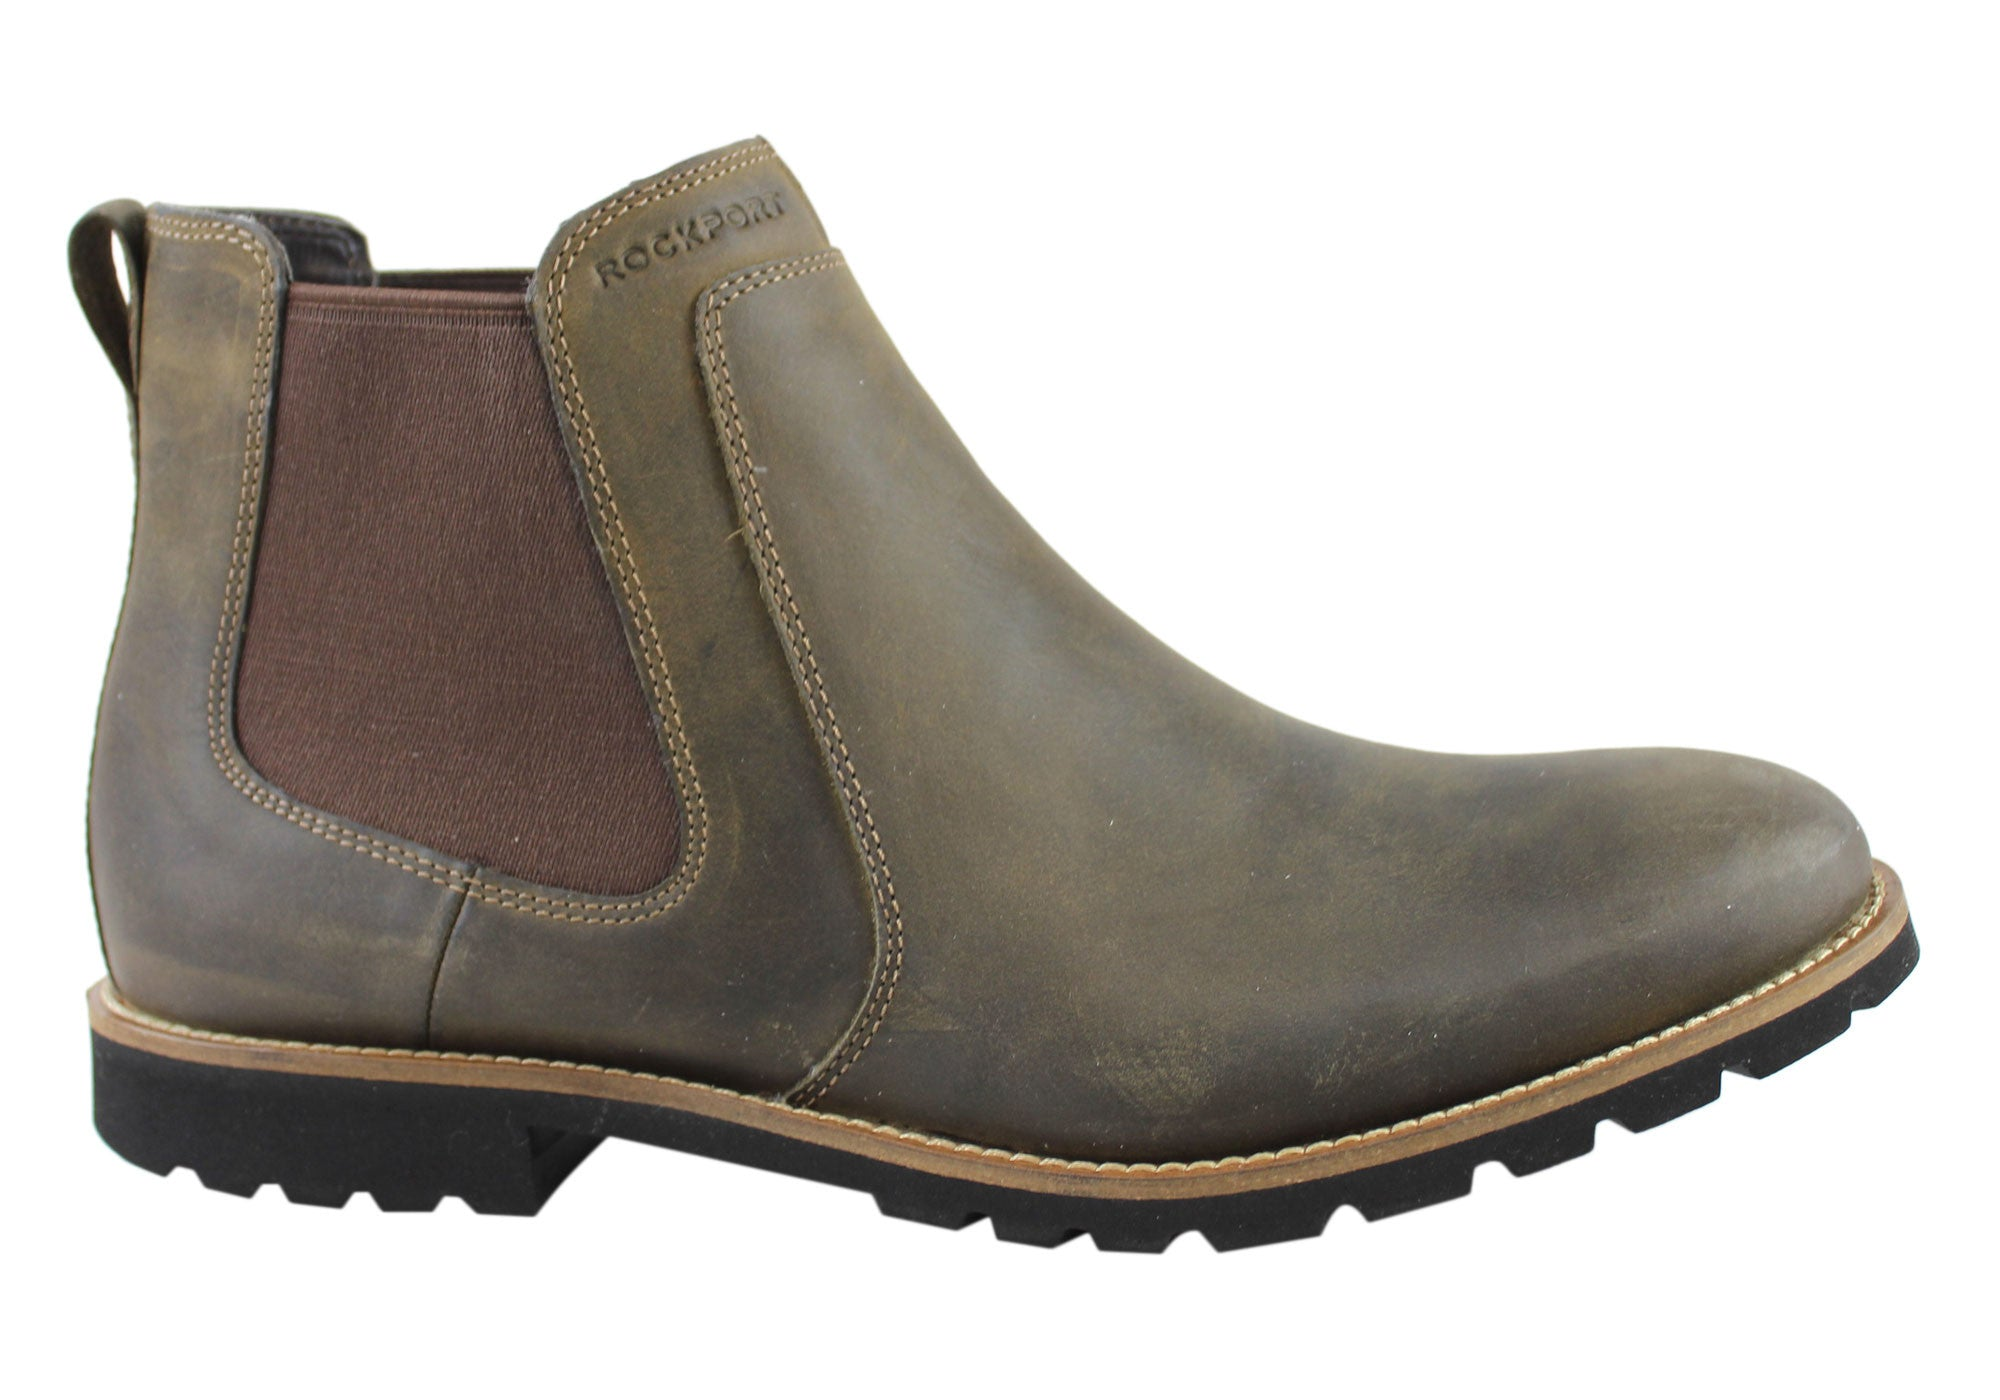 Rockport Mens Leather S & R Chelsea Pull On Boots